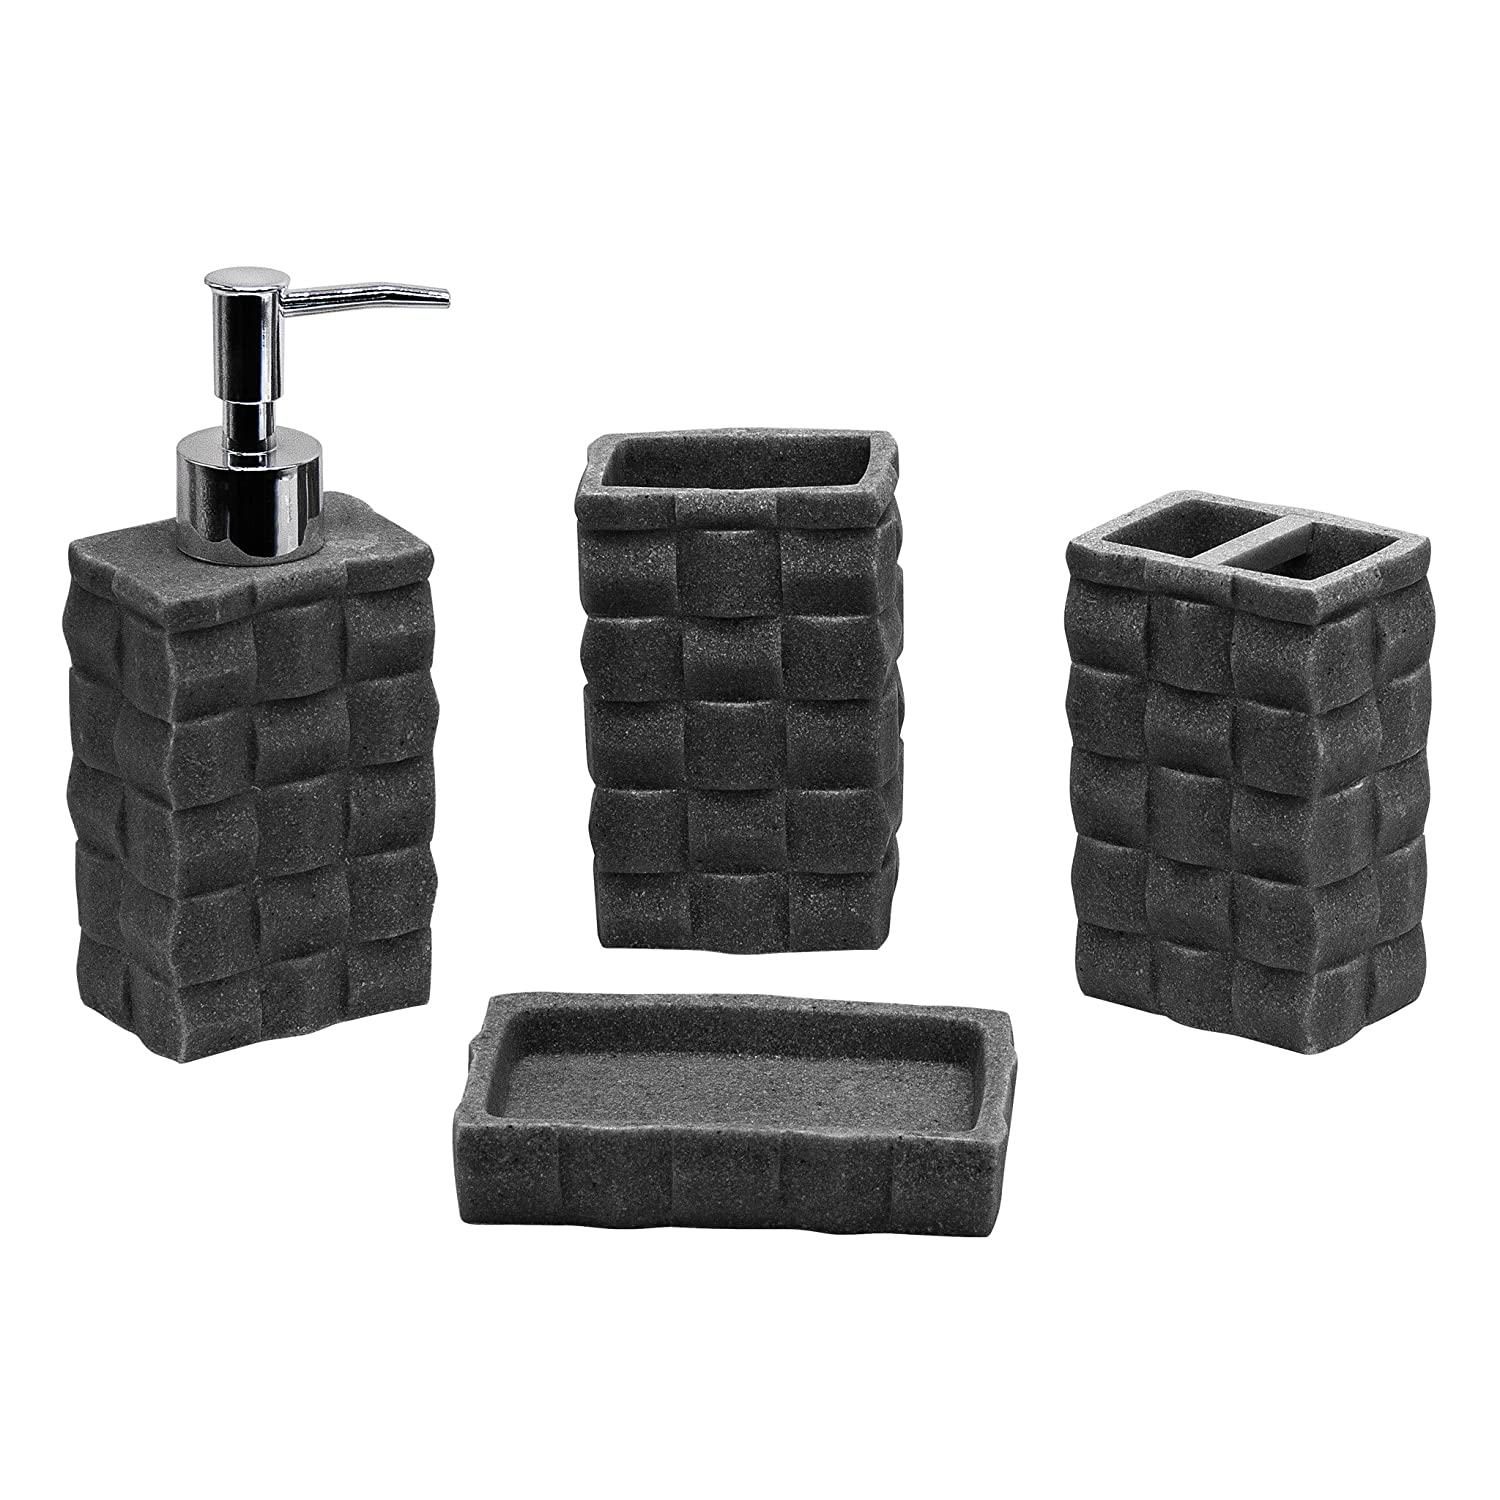 4pc Bathroom Accessories Set - Toothbrush Holder, Soap Dish, Soap/Lotion Dispenser, Tumbler, Dark Grey SQ Professional Others